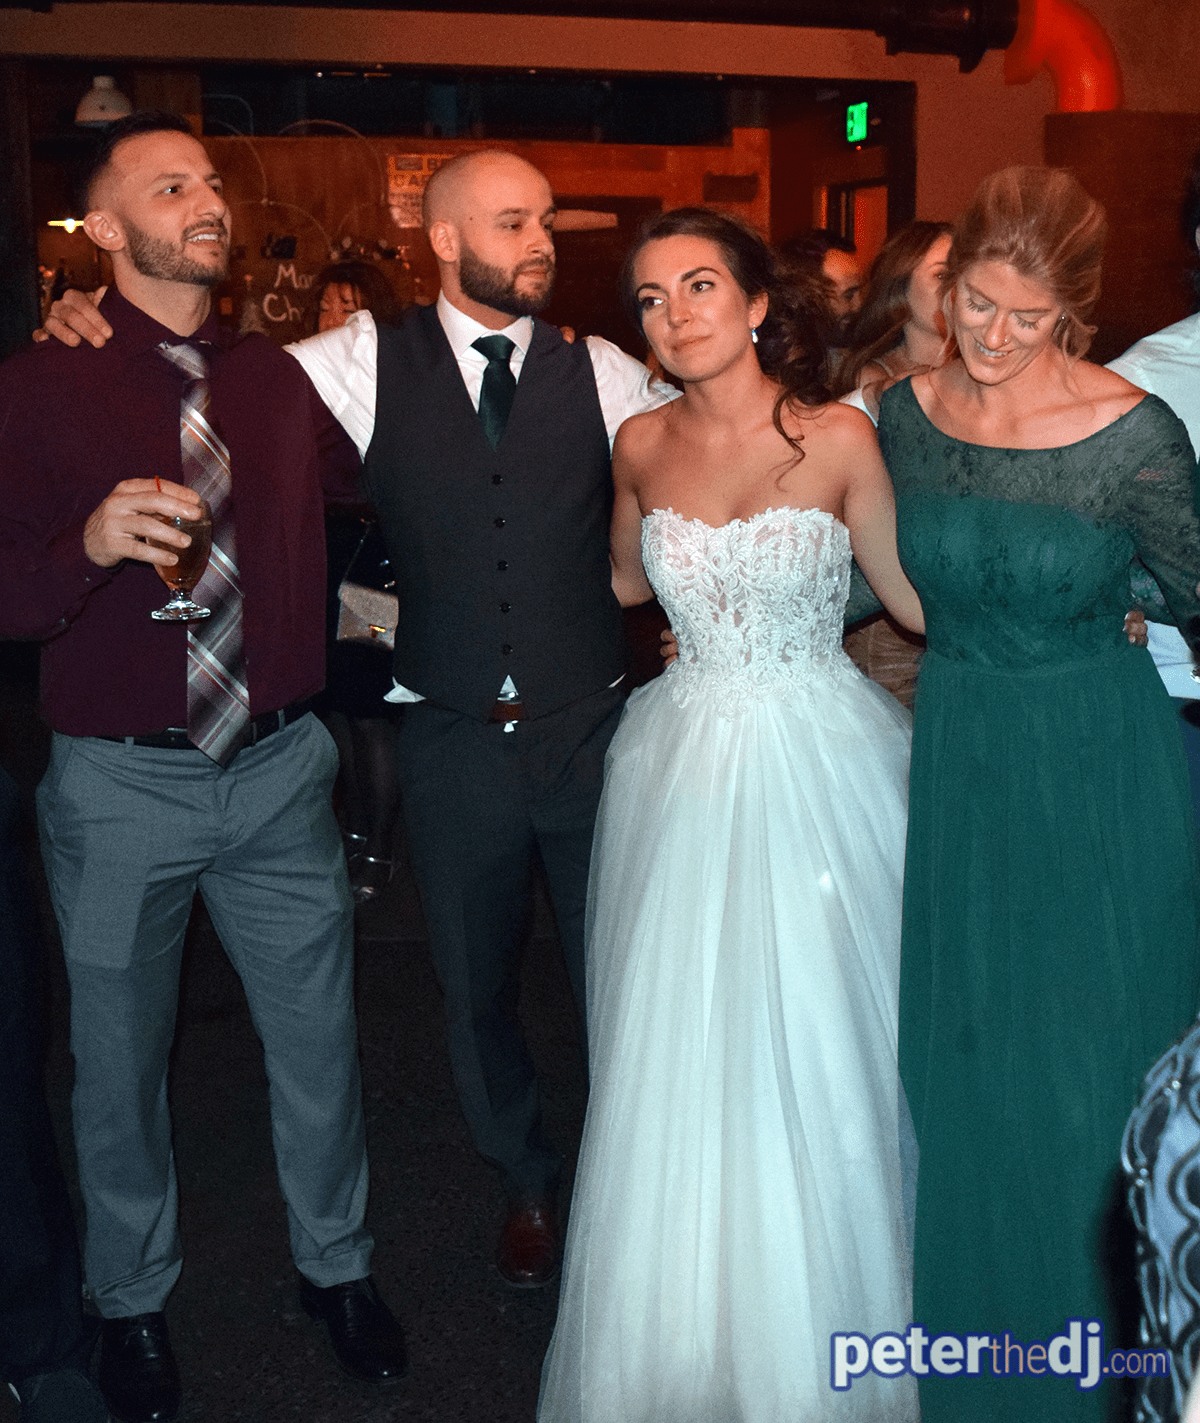 Molly & Cic's wedding at The Cannery, Vernon, NY - photo by Peter Naughton peterthedj.com - December 2019